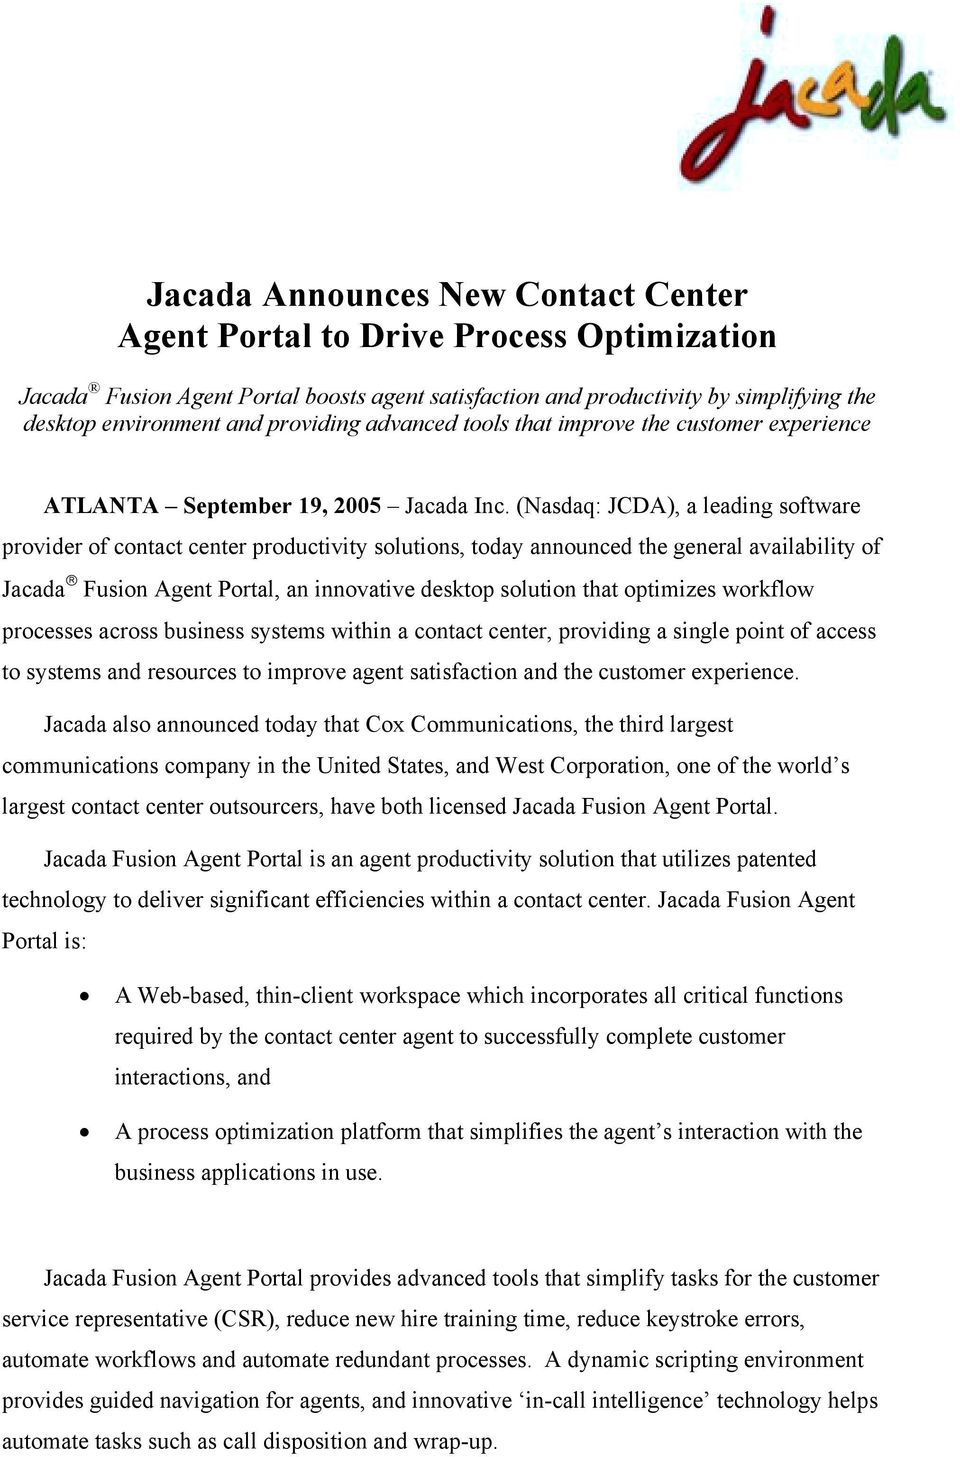 (Nasdaq: JCDA), a leading software provider of contact center productivity solutions, today announced the general availability of Jacada Fusion Agent Portal, an innovative desktop solution that